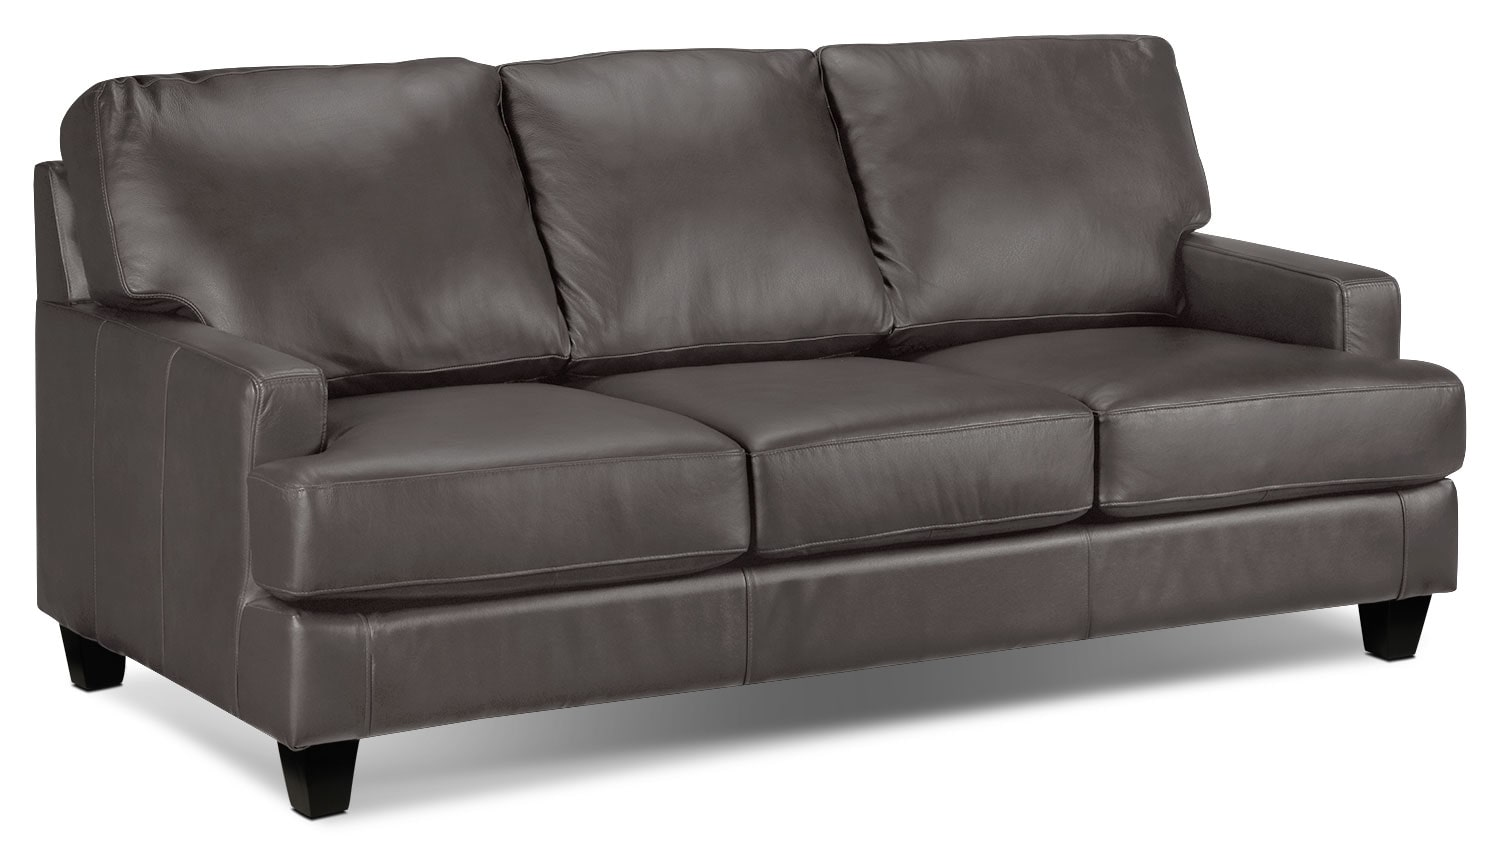 Living Room Furniture - Janie Sofa - Ash